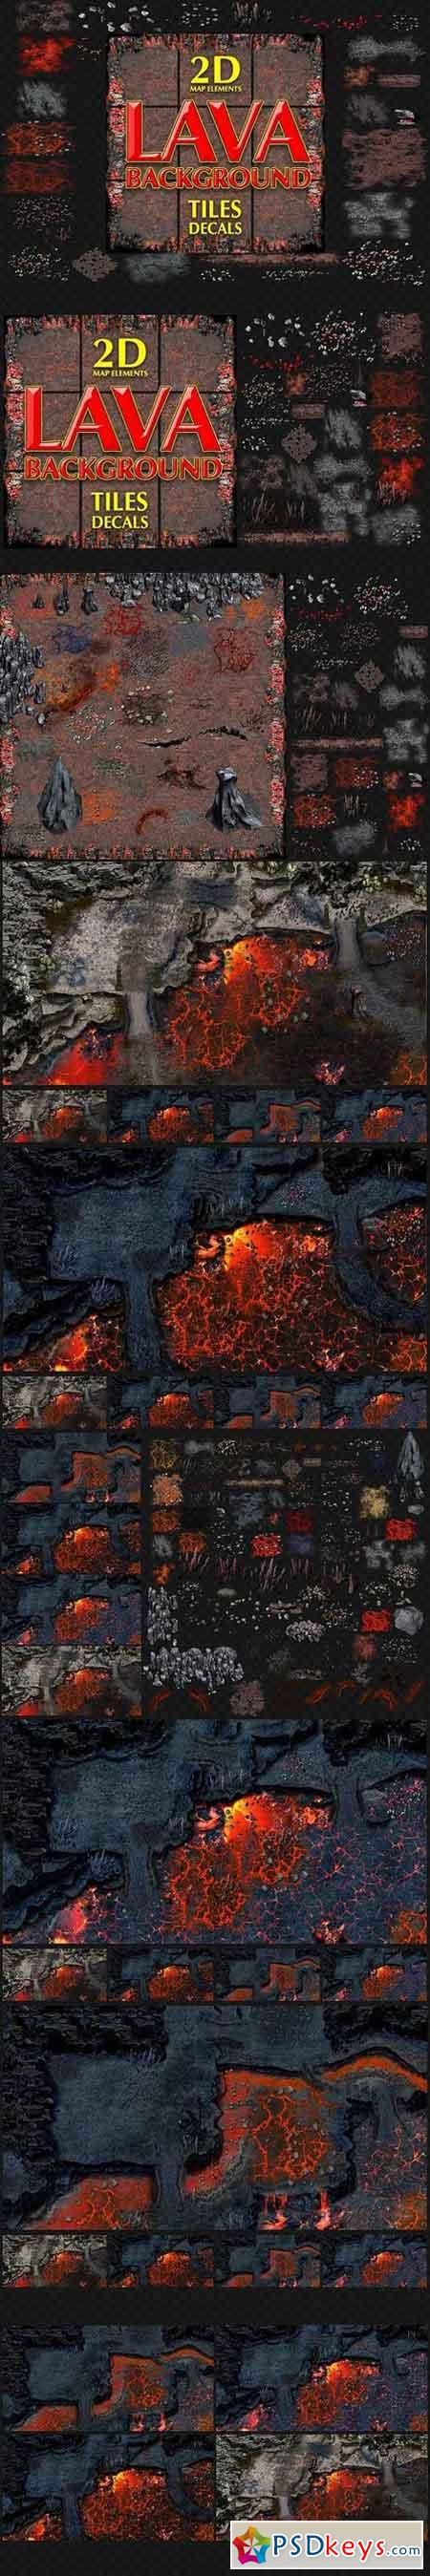 LAVA GAME BACKGROUND TILES AND DECAL 1373058